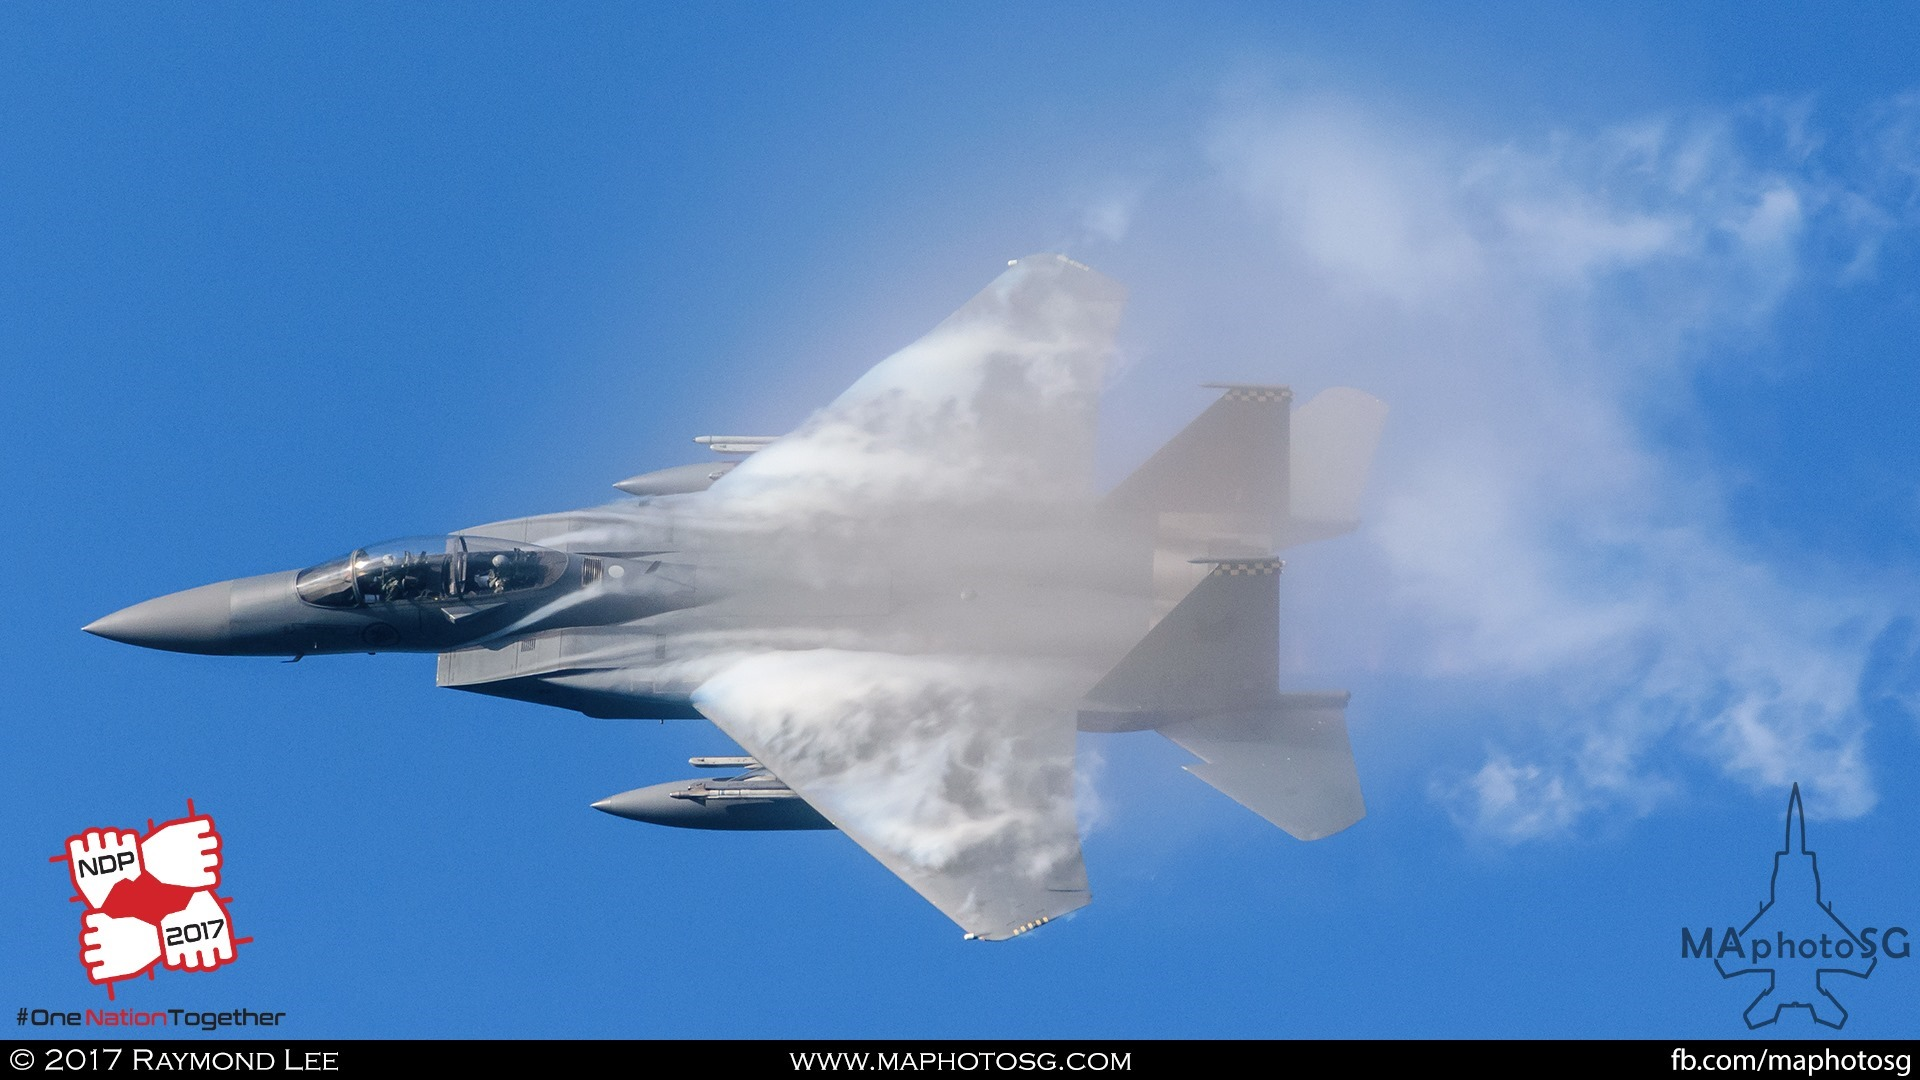 6. Massive vapour trails form on the wings of a F-15SG as it performs a 360 degree high-g turn.